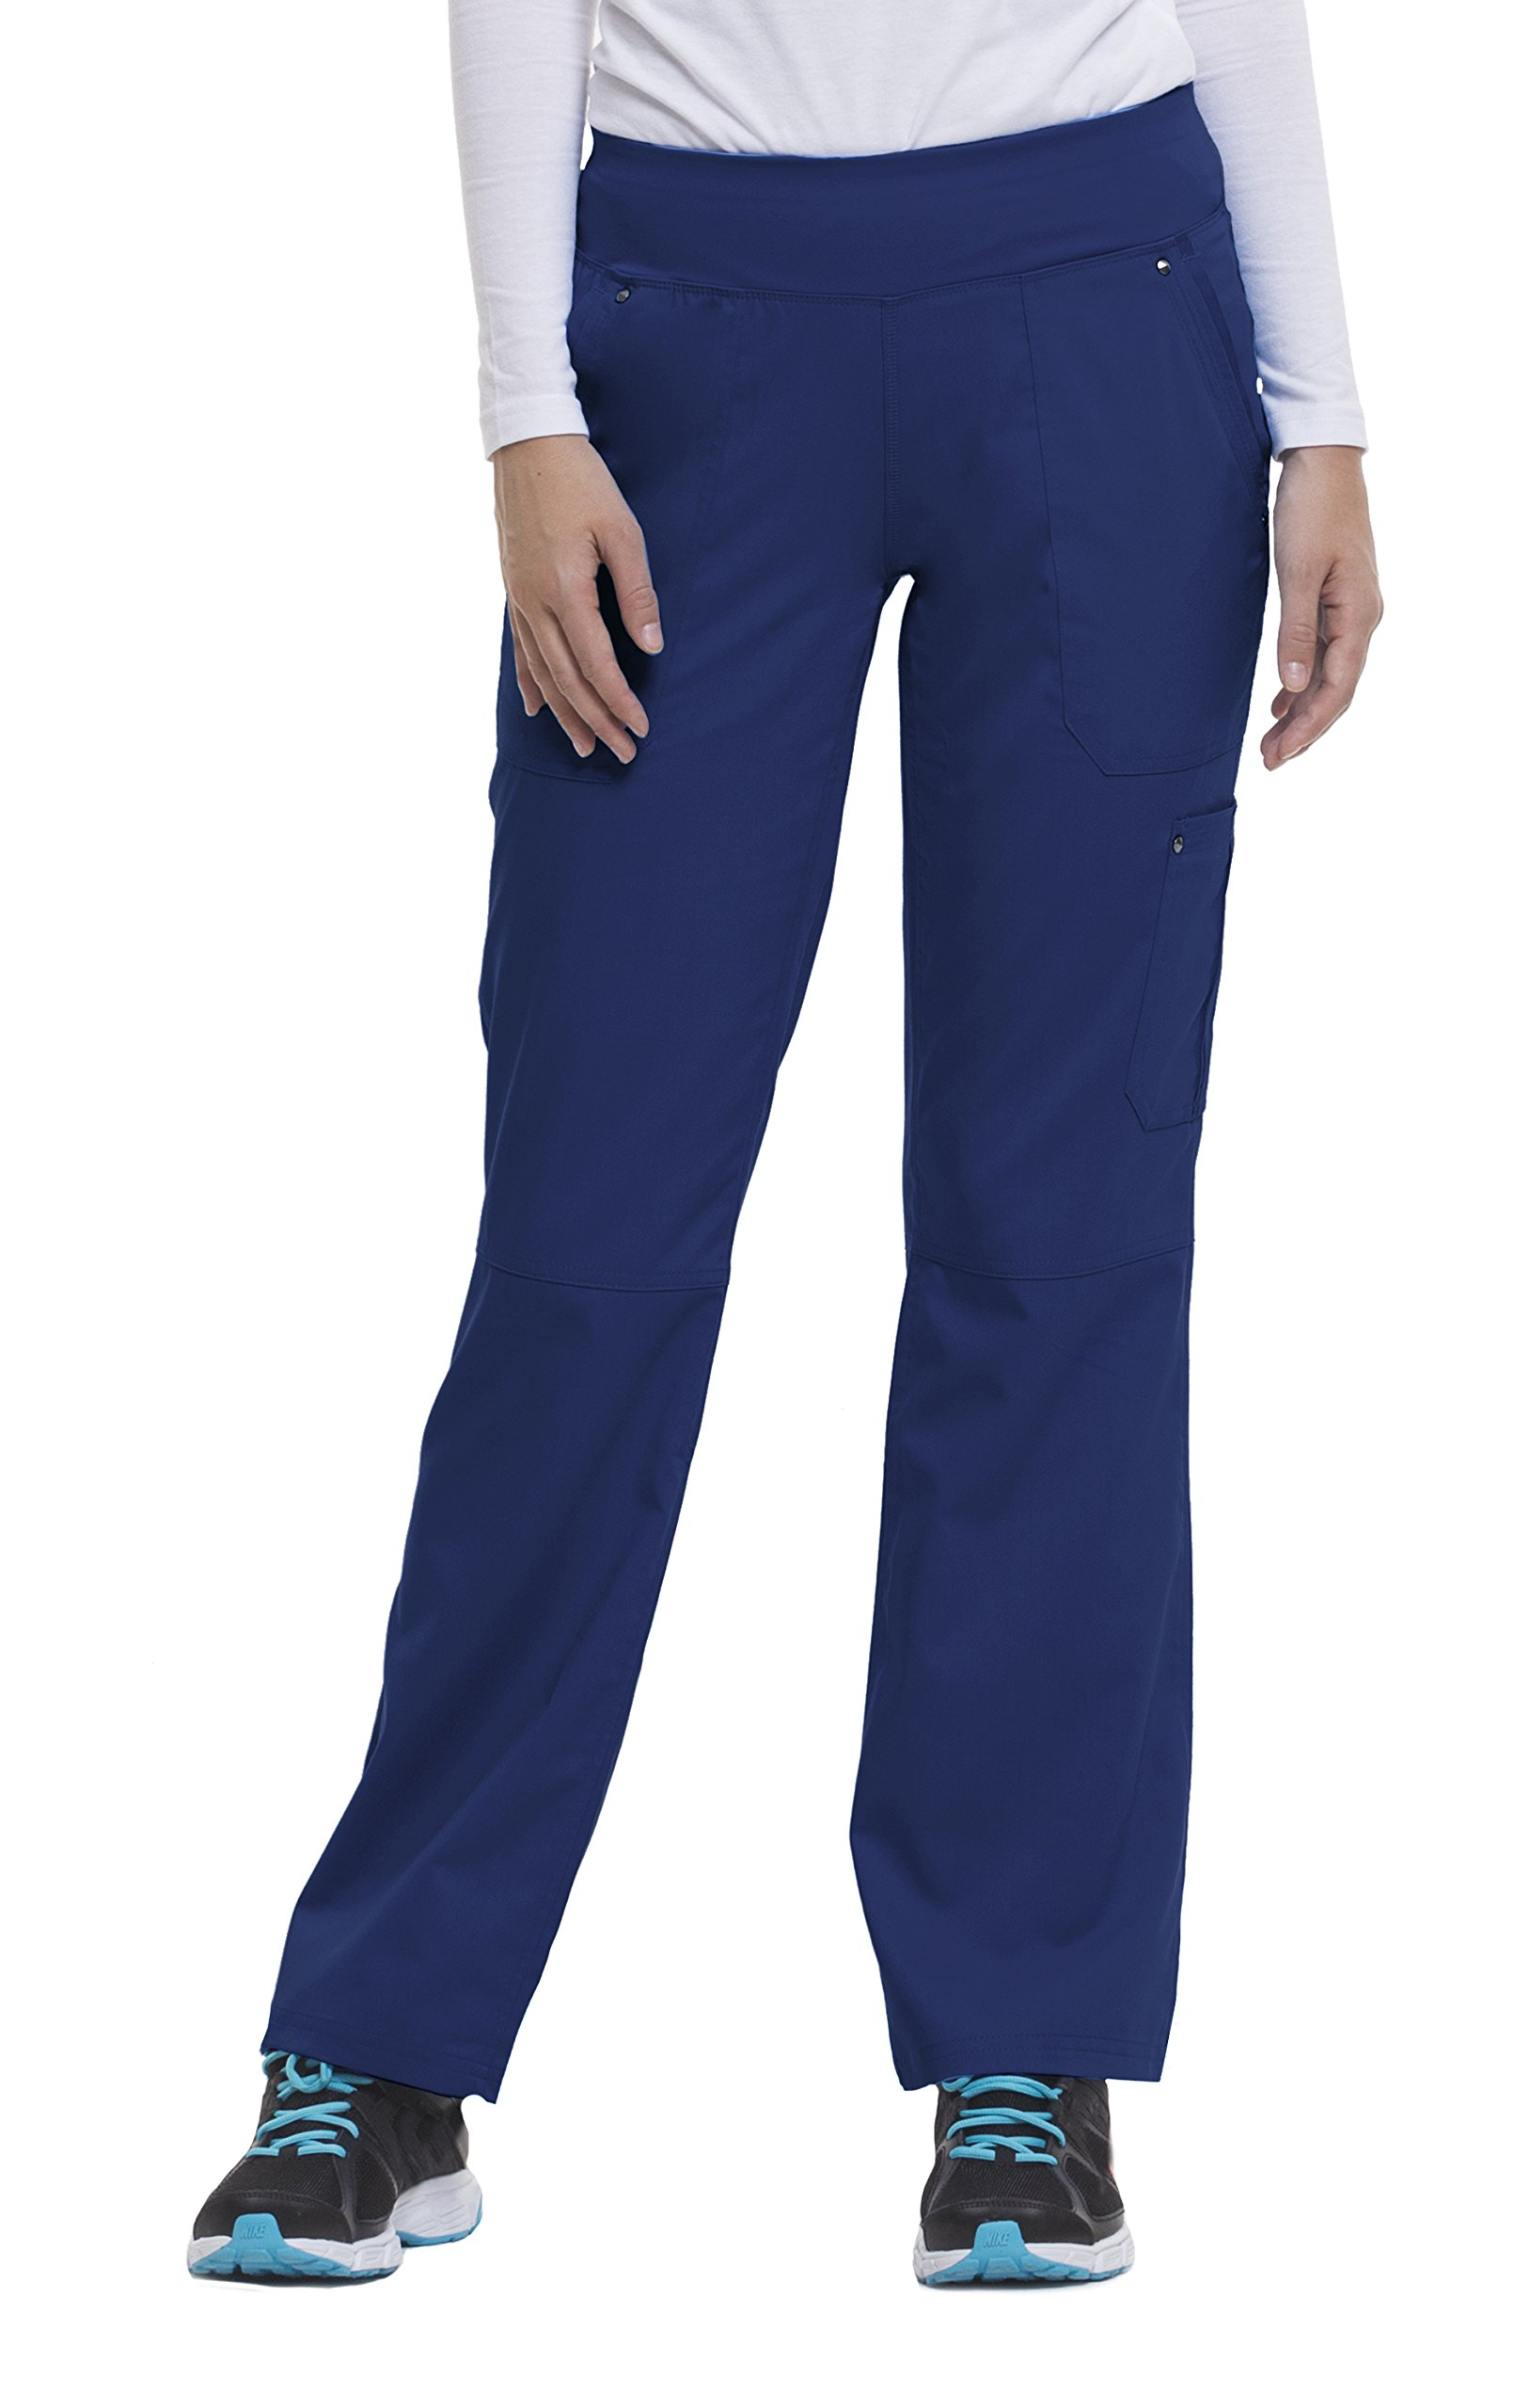 Purple Label Yoga Women's''Tori'' 9133 5 Pocket Knit Waist Pant by Healing Hands Scrubs- Navy- Medium